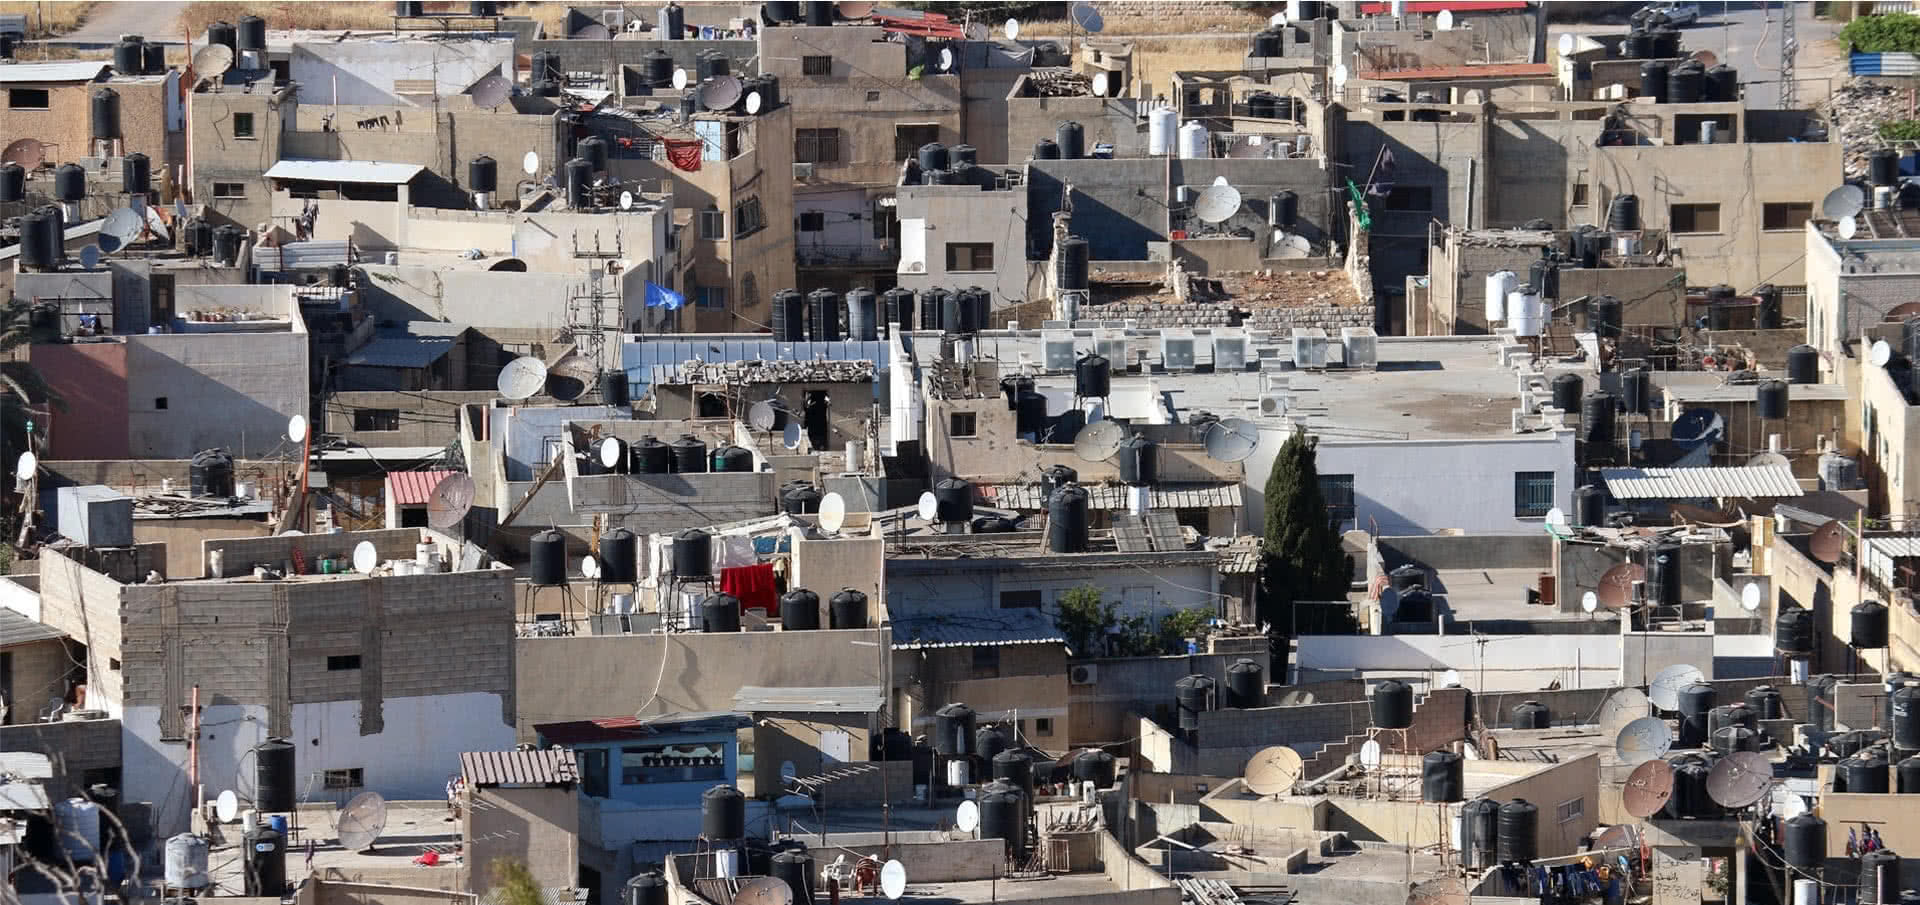 Established with 50 shelter units, the number of housing units in Jenin refugee camp grew to 1,280 by 2007, according to UNRWA. (Photo: DCIP / Ahmad Al-Bazz)